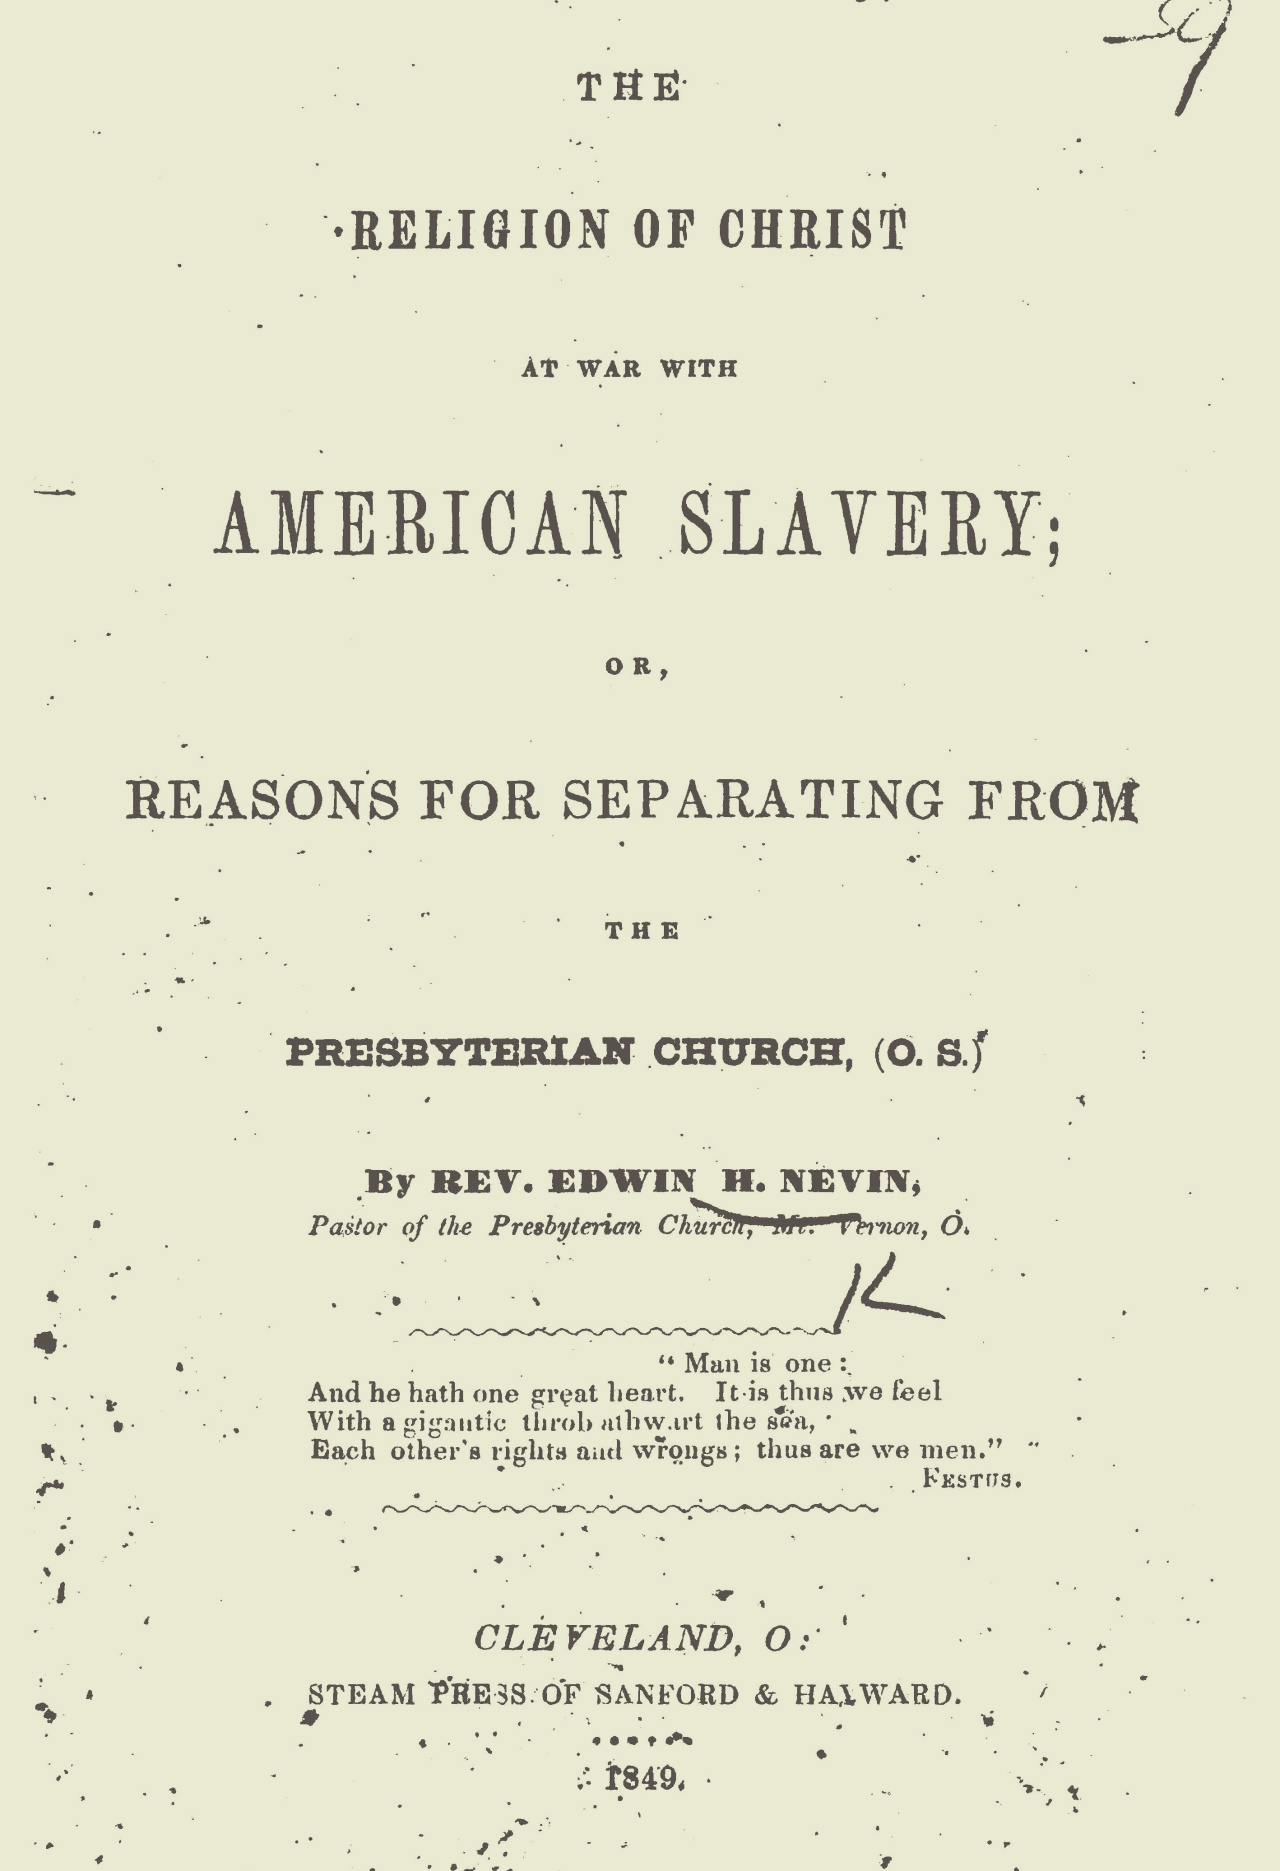 Nevin, Edwin Henry, The Religion of Christ at War With American Slavery Title Page.jpg